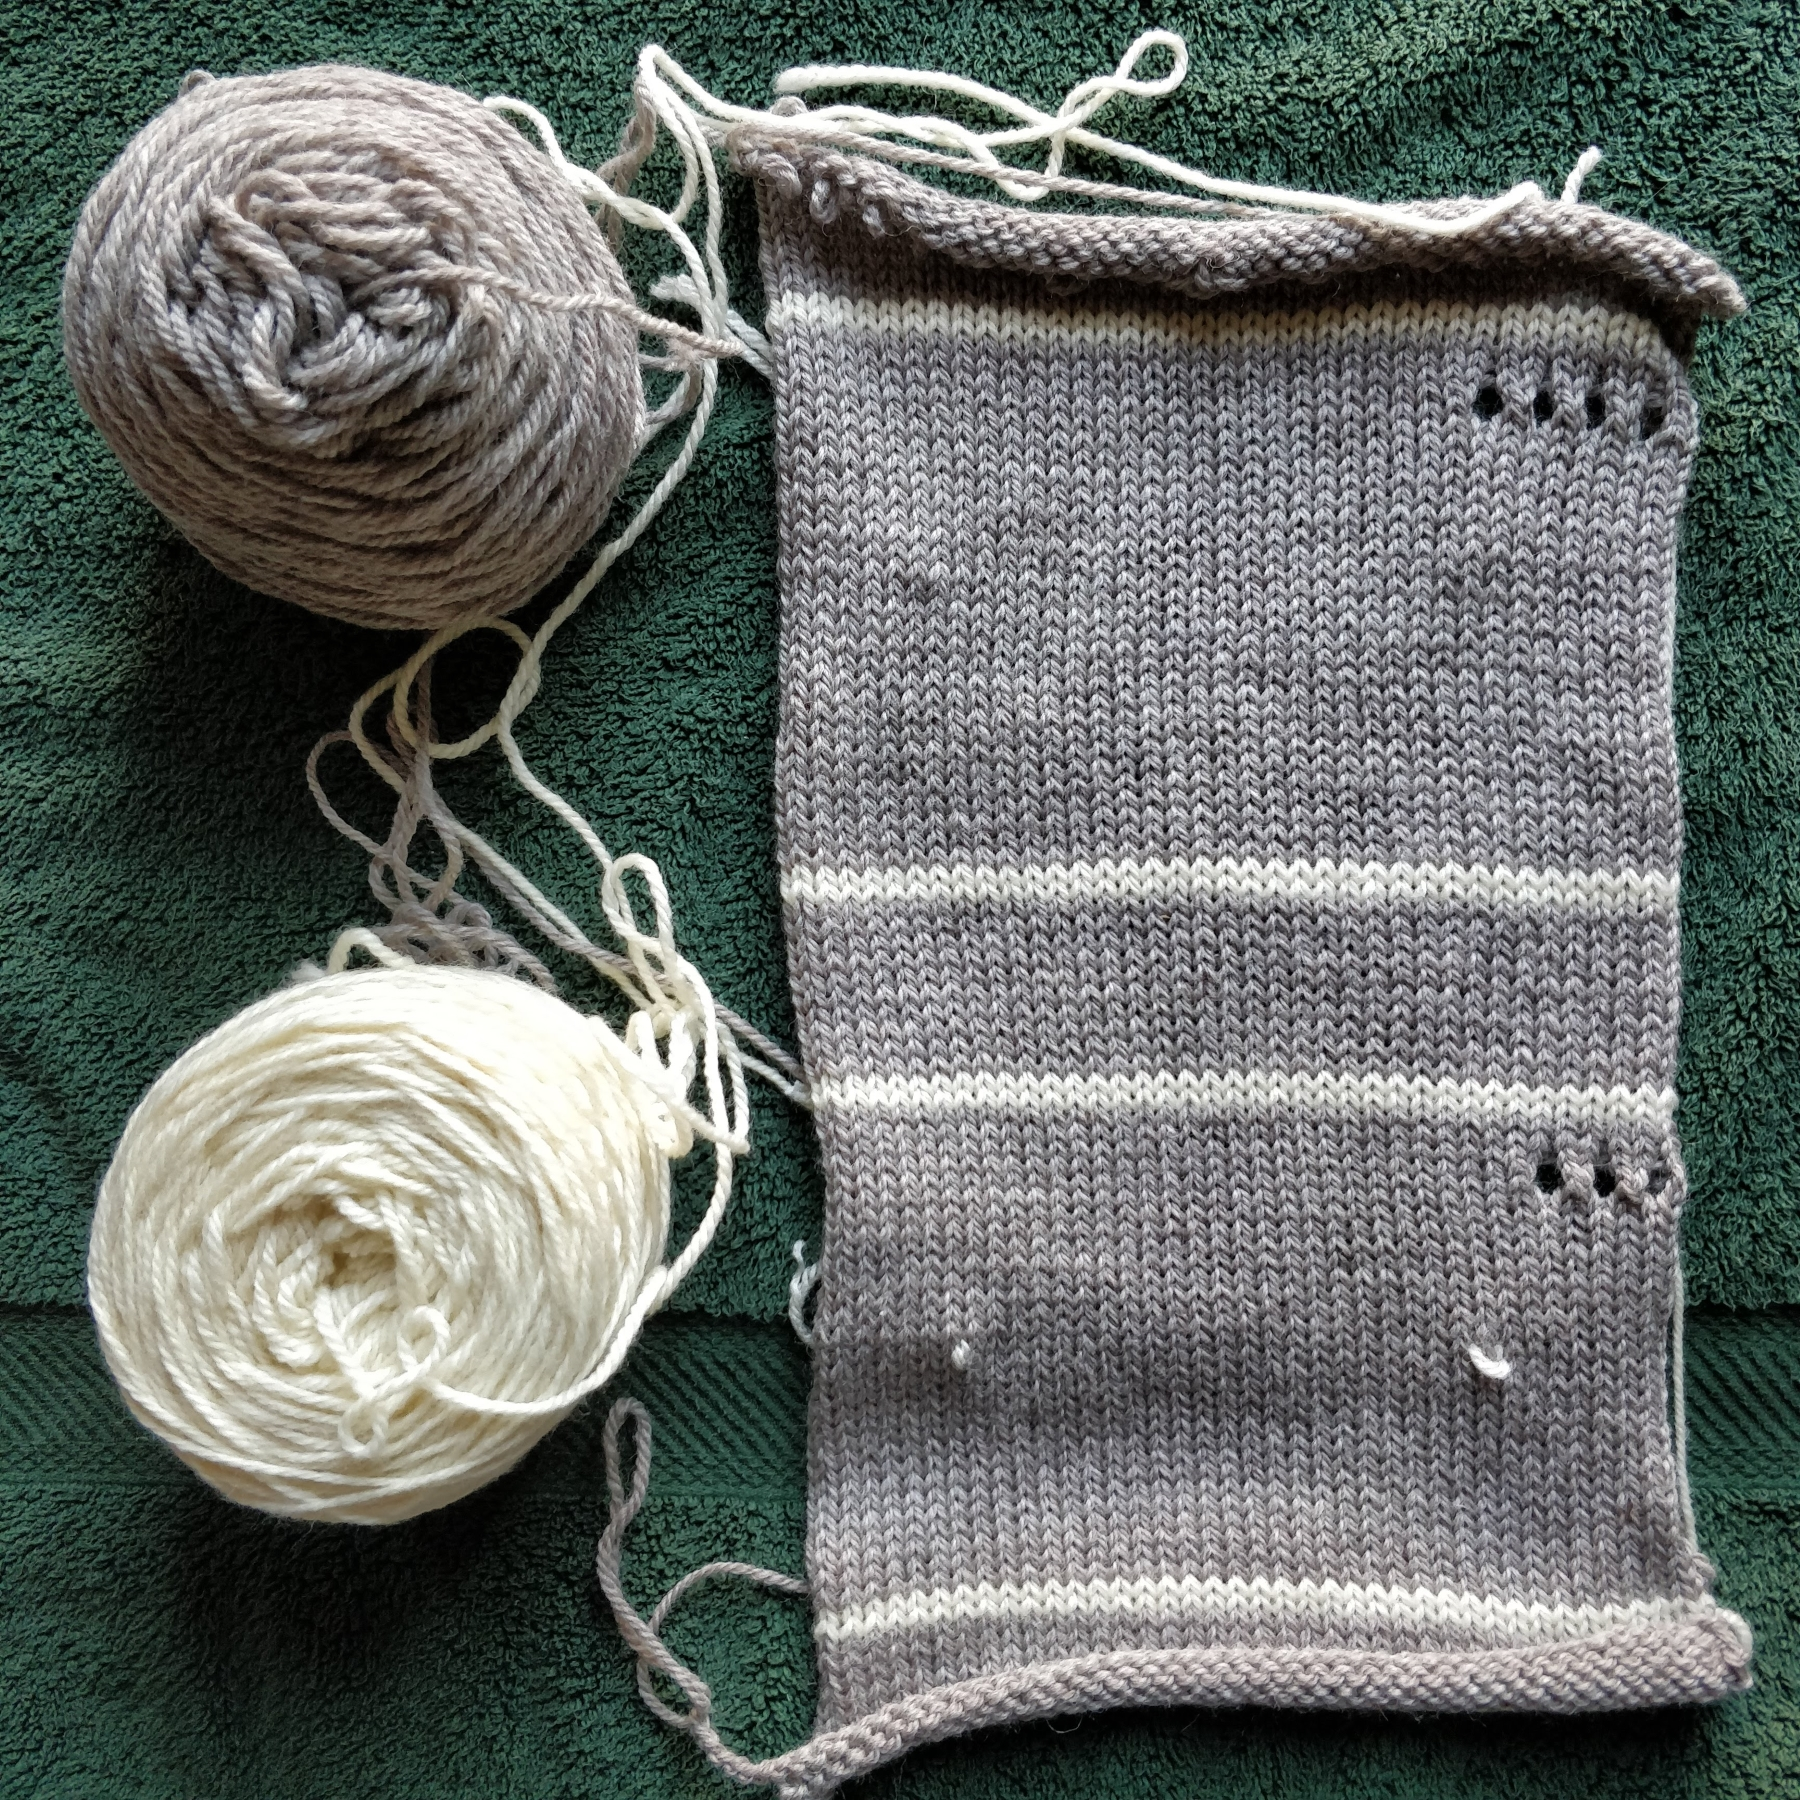 A gauge swatch of grayish-tan yarn with stripes of white to delineate sections of different stitch sizes.